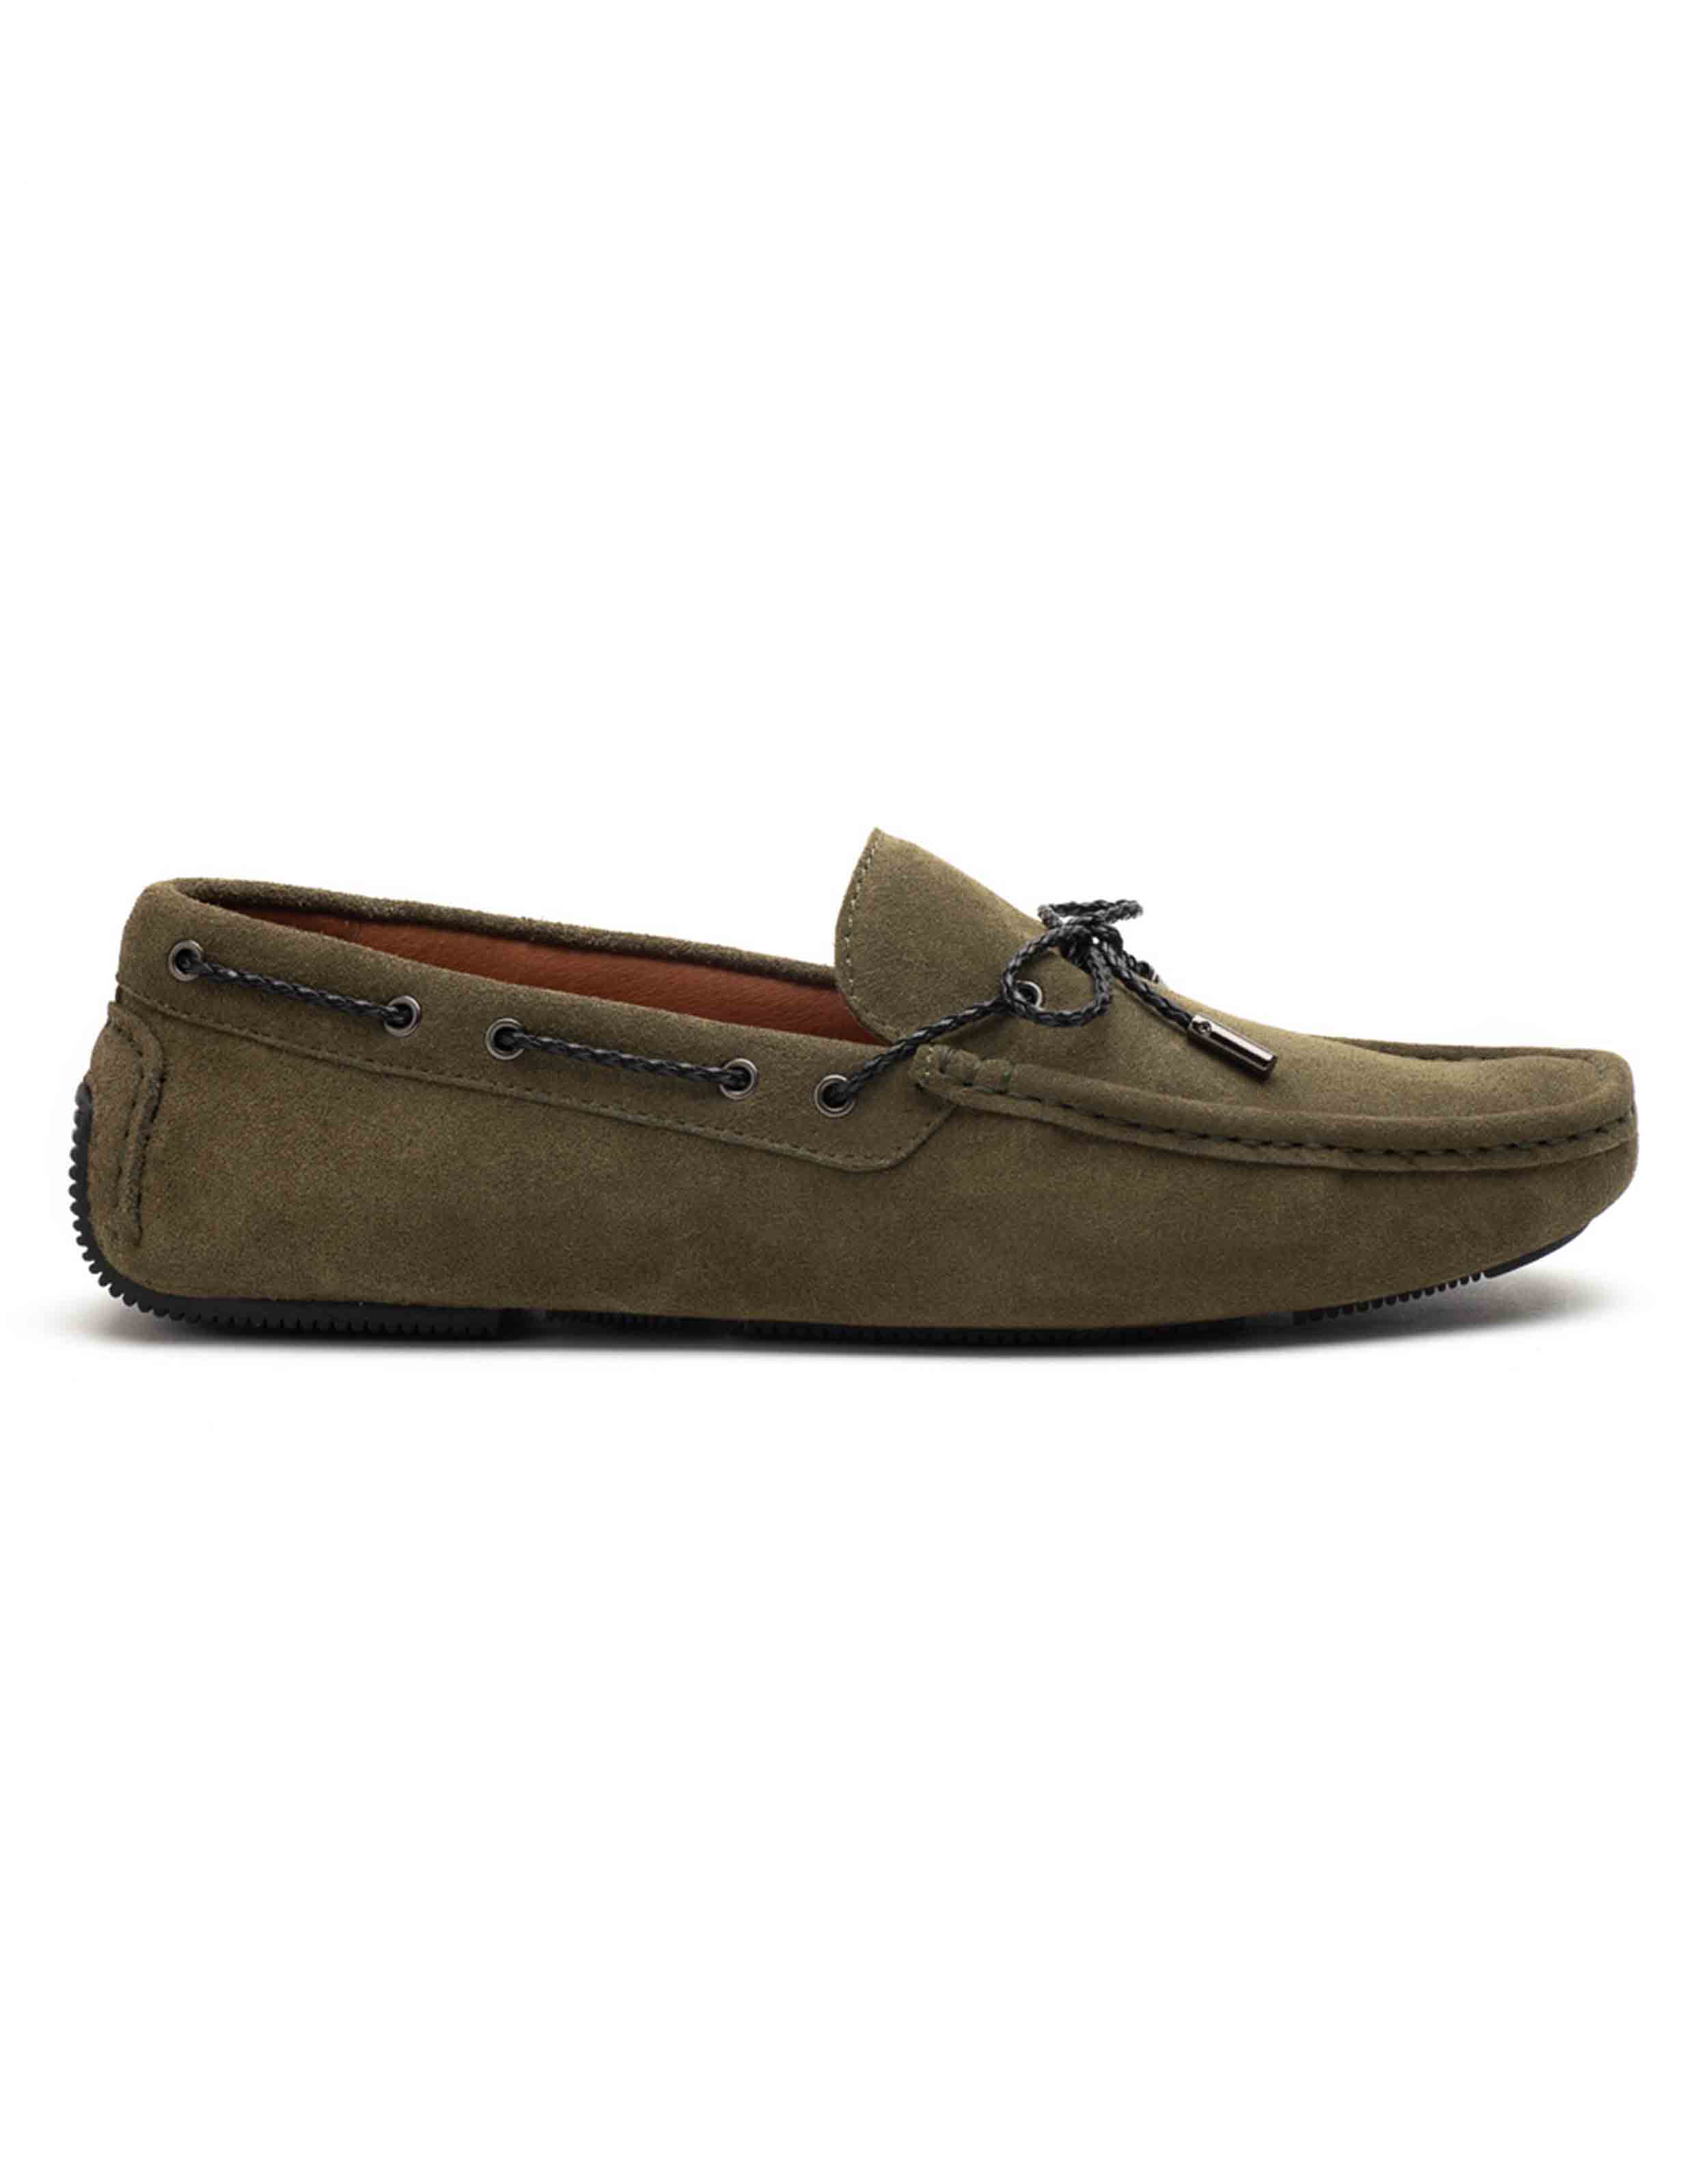 Heel _ Buckle London-HBDARM102-Olive Driving Moccassins-1